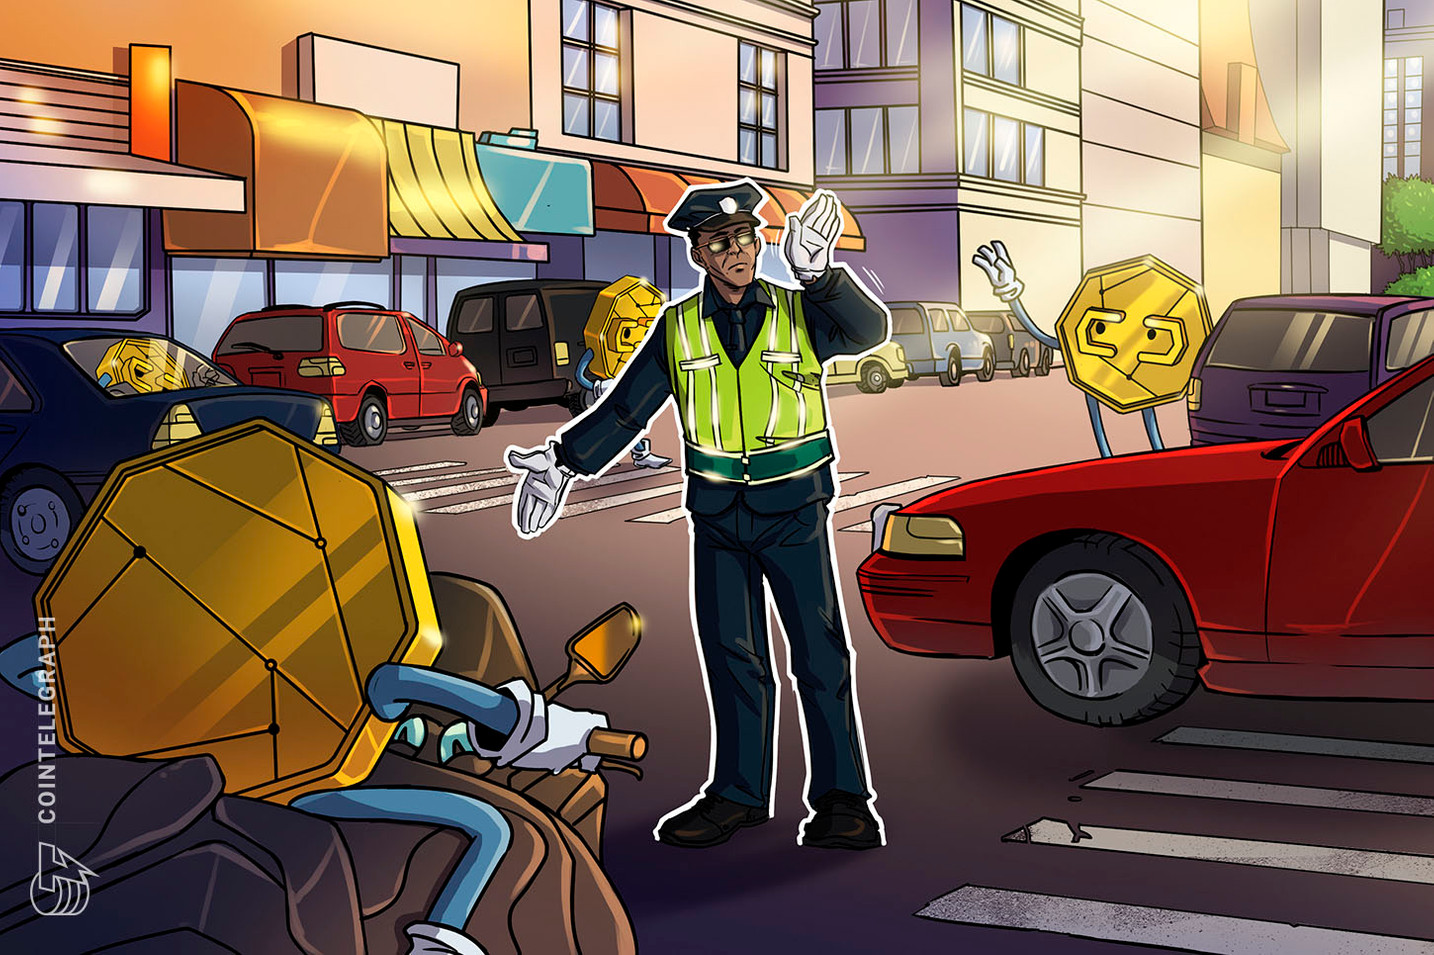 Singapore Confirms It Will Not 'Ban' Cryptocurrency, But Risk Remain